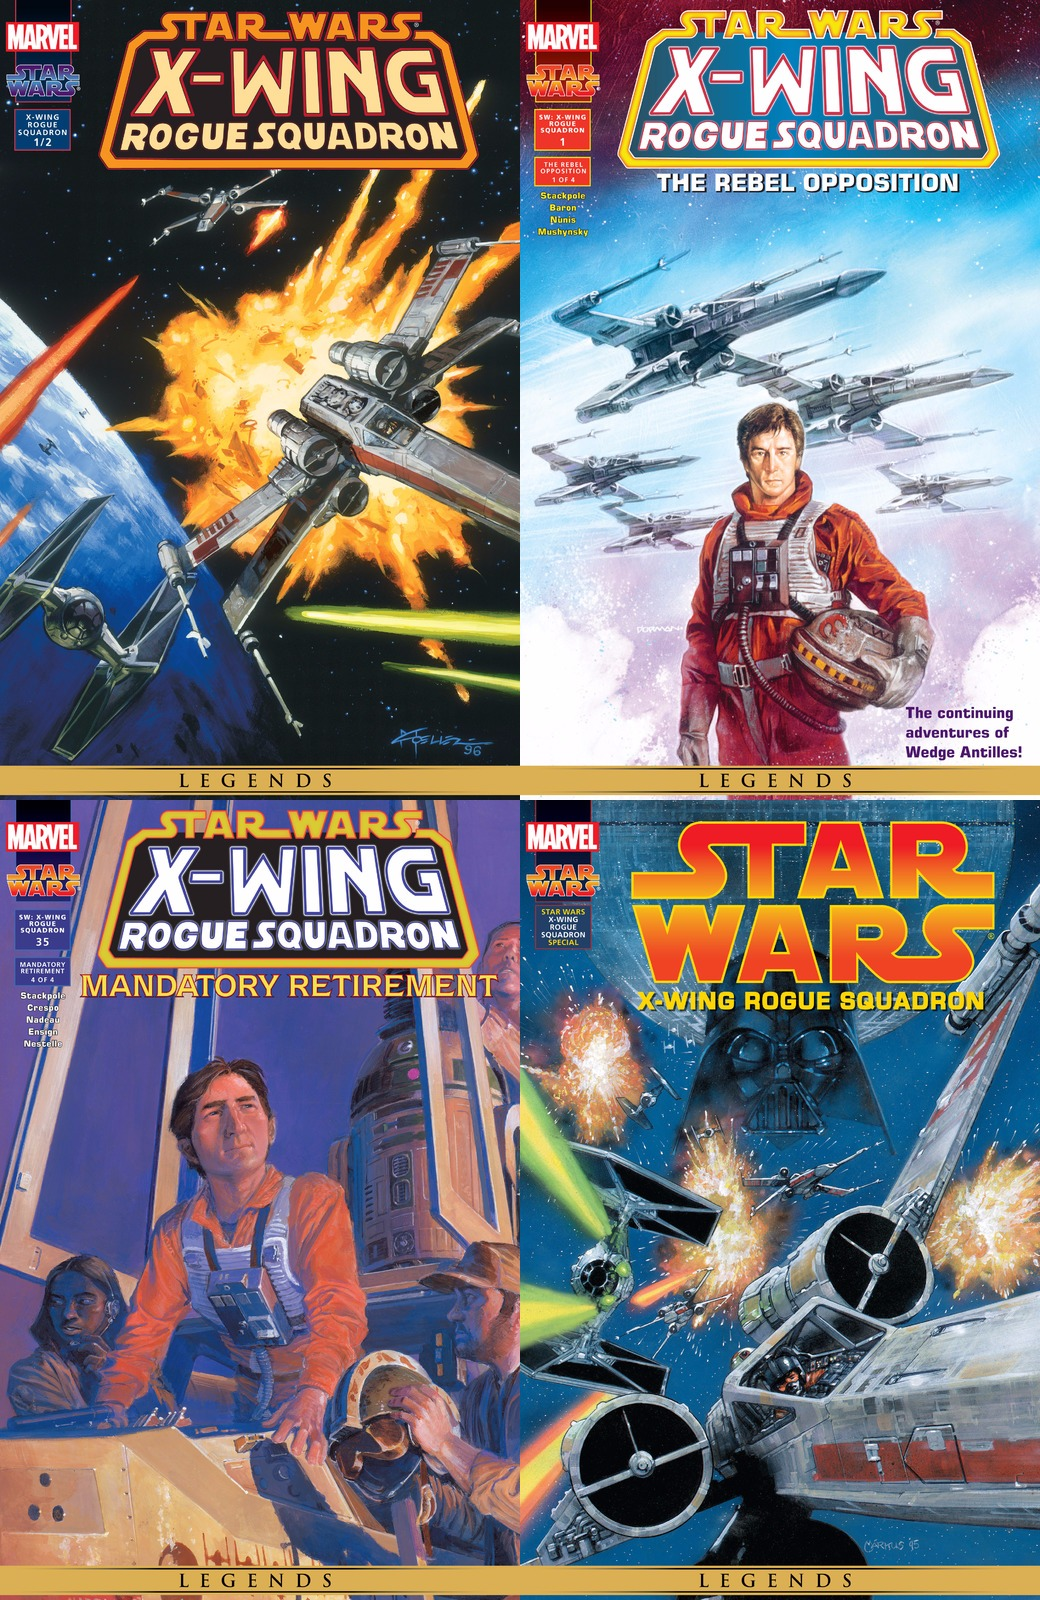 Star Wars - X-Wing Rogue Squadron (000 5-035+Special